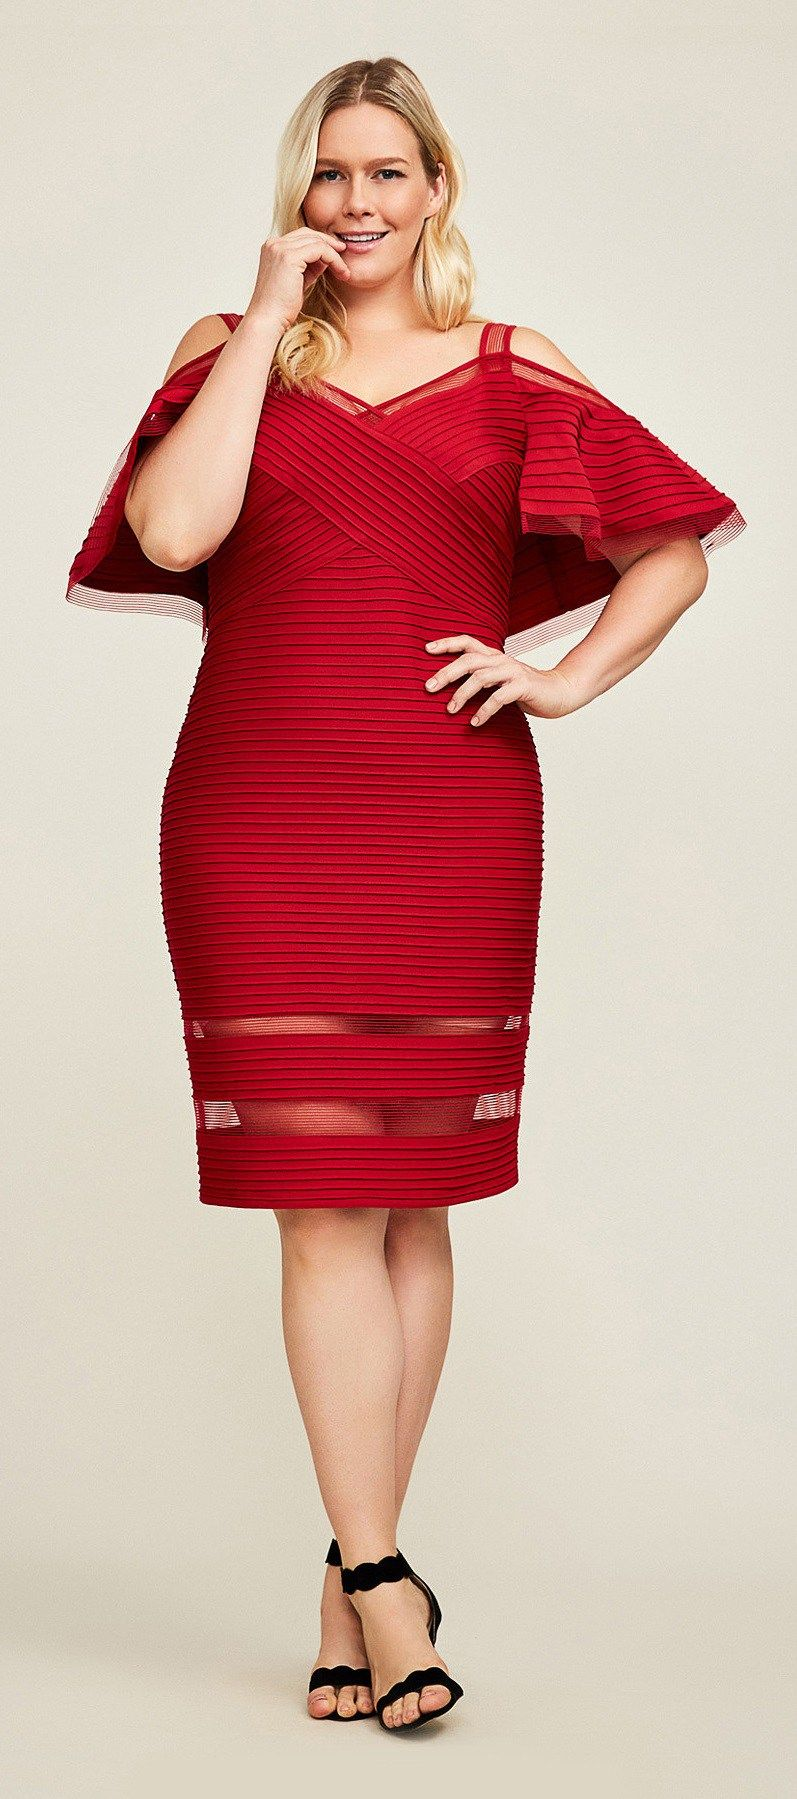 Plus size party dresses for weddings   Plus Size Spring Wedding Guest Dresses with Sleeves  Fashion